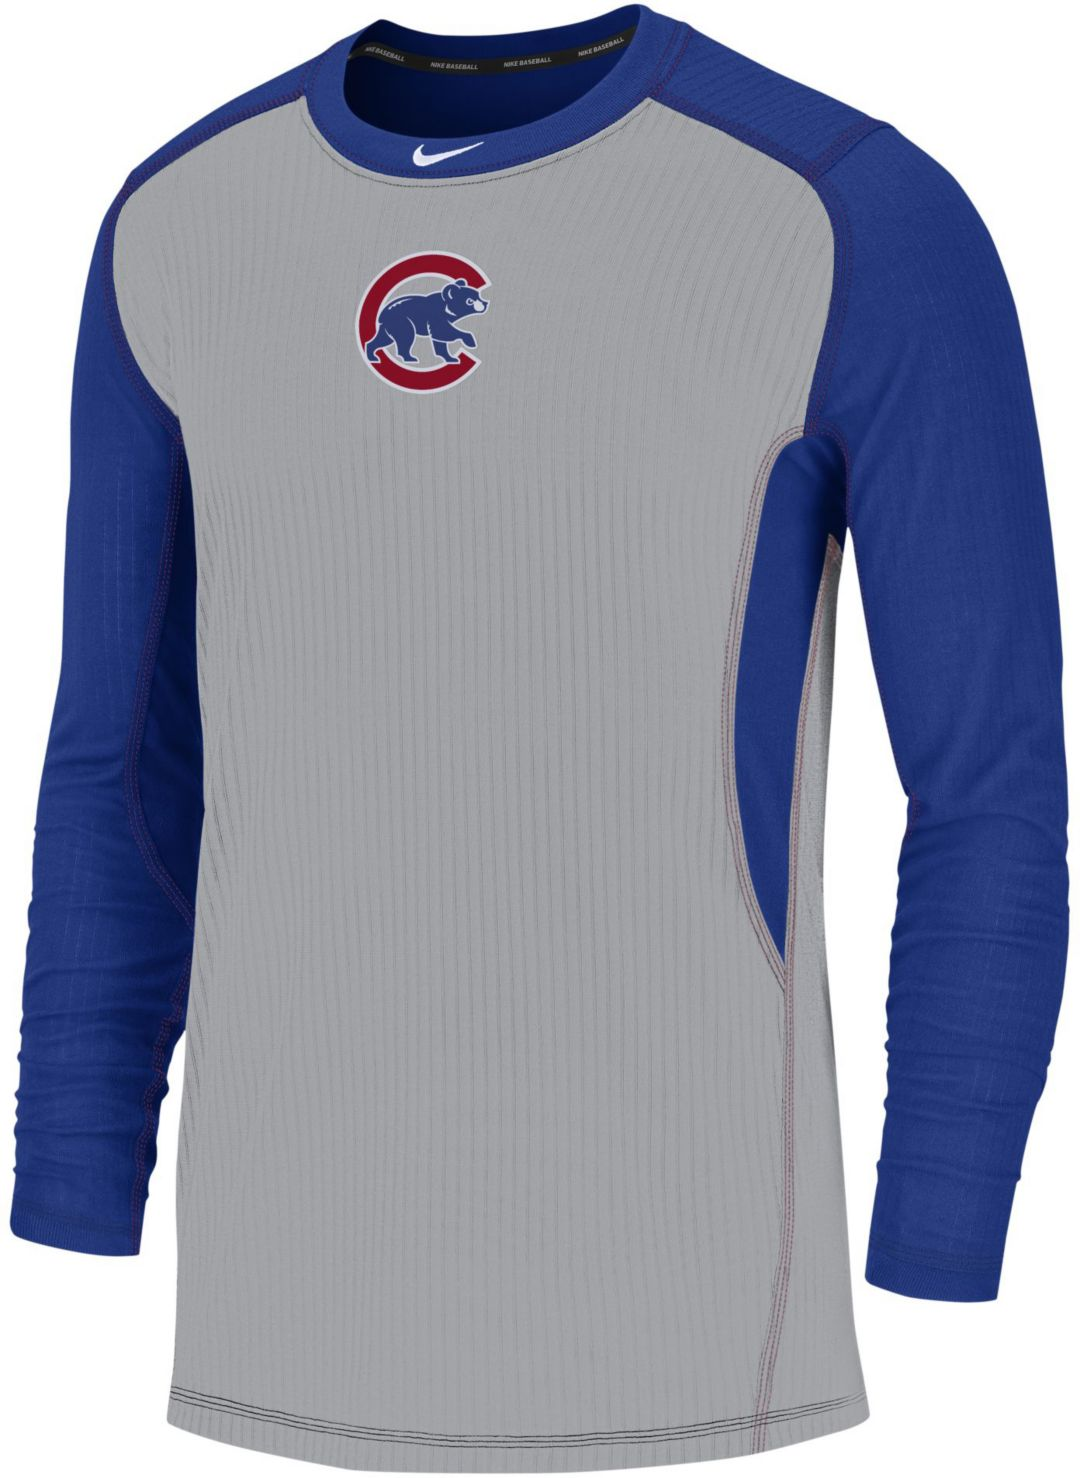 97bf30a0 Nike Men's Chicago Cubs Authentic Collection Dri-FIT Long Sleeve Top ...